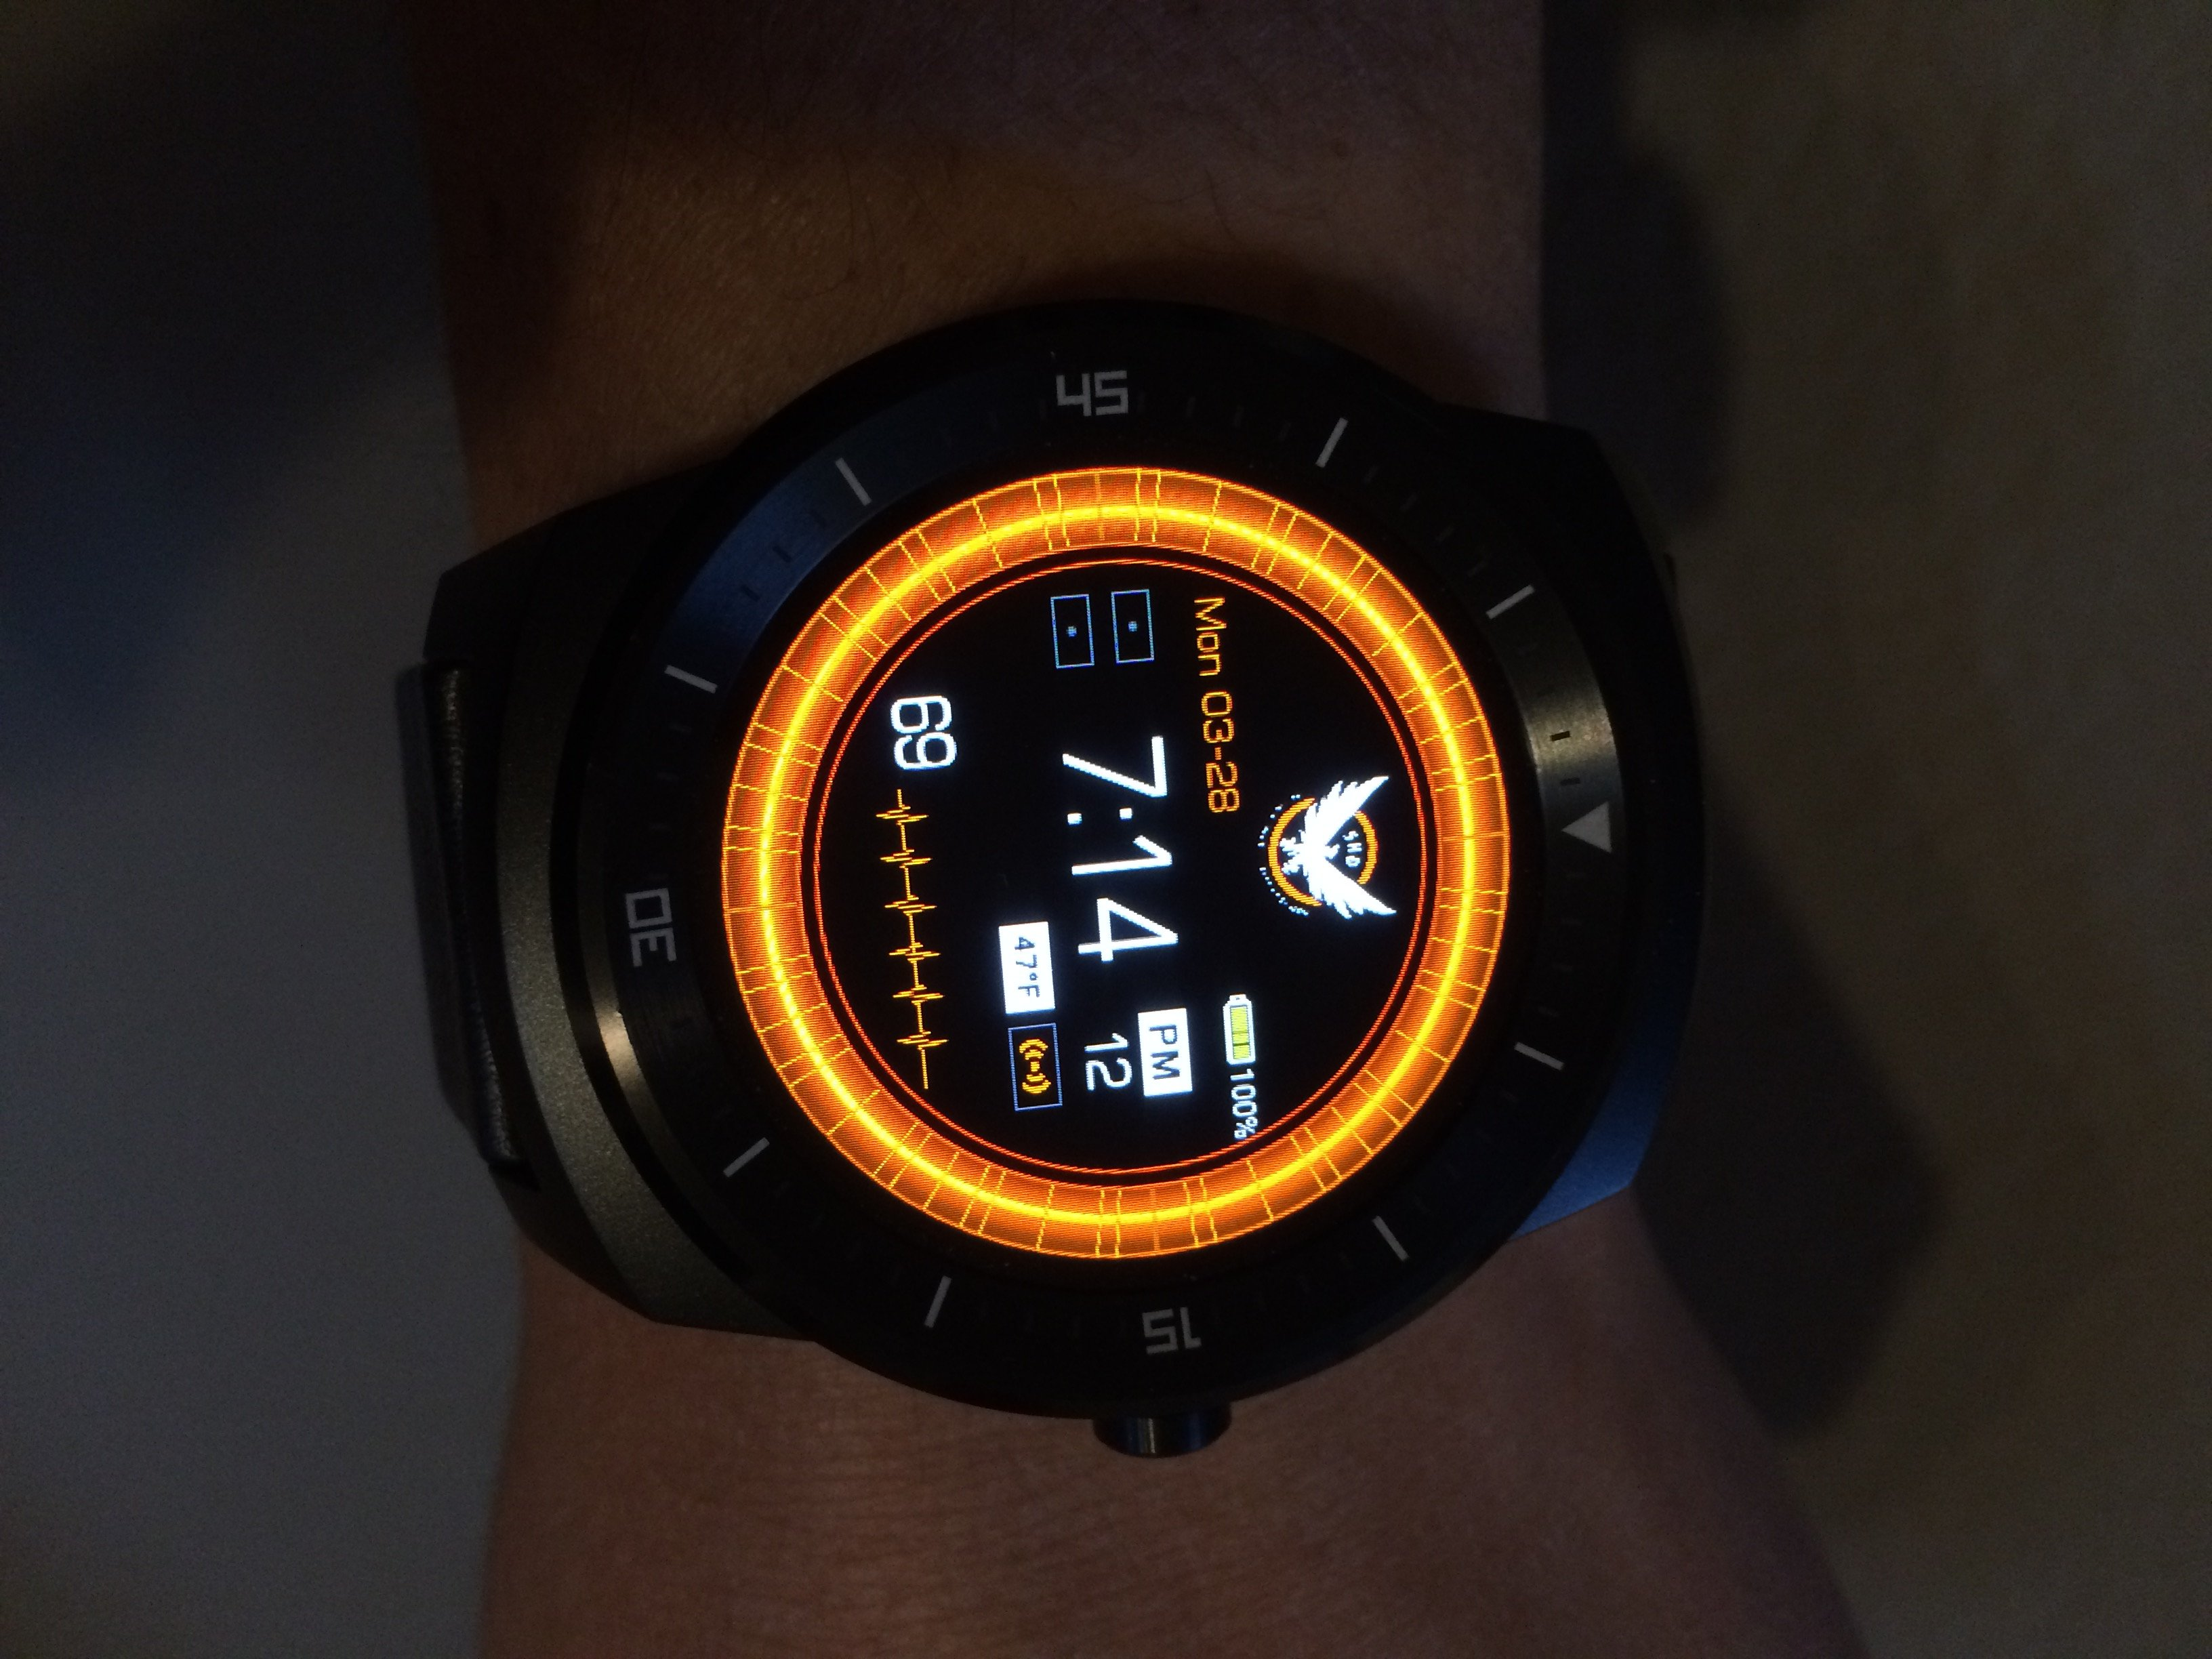 Tom Clancy S The Division Agent Watch Face Rpf Costume And Prop Maker Community